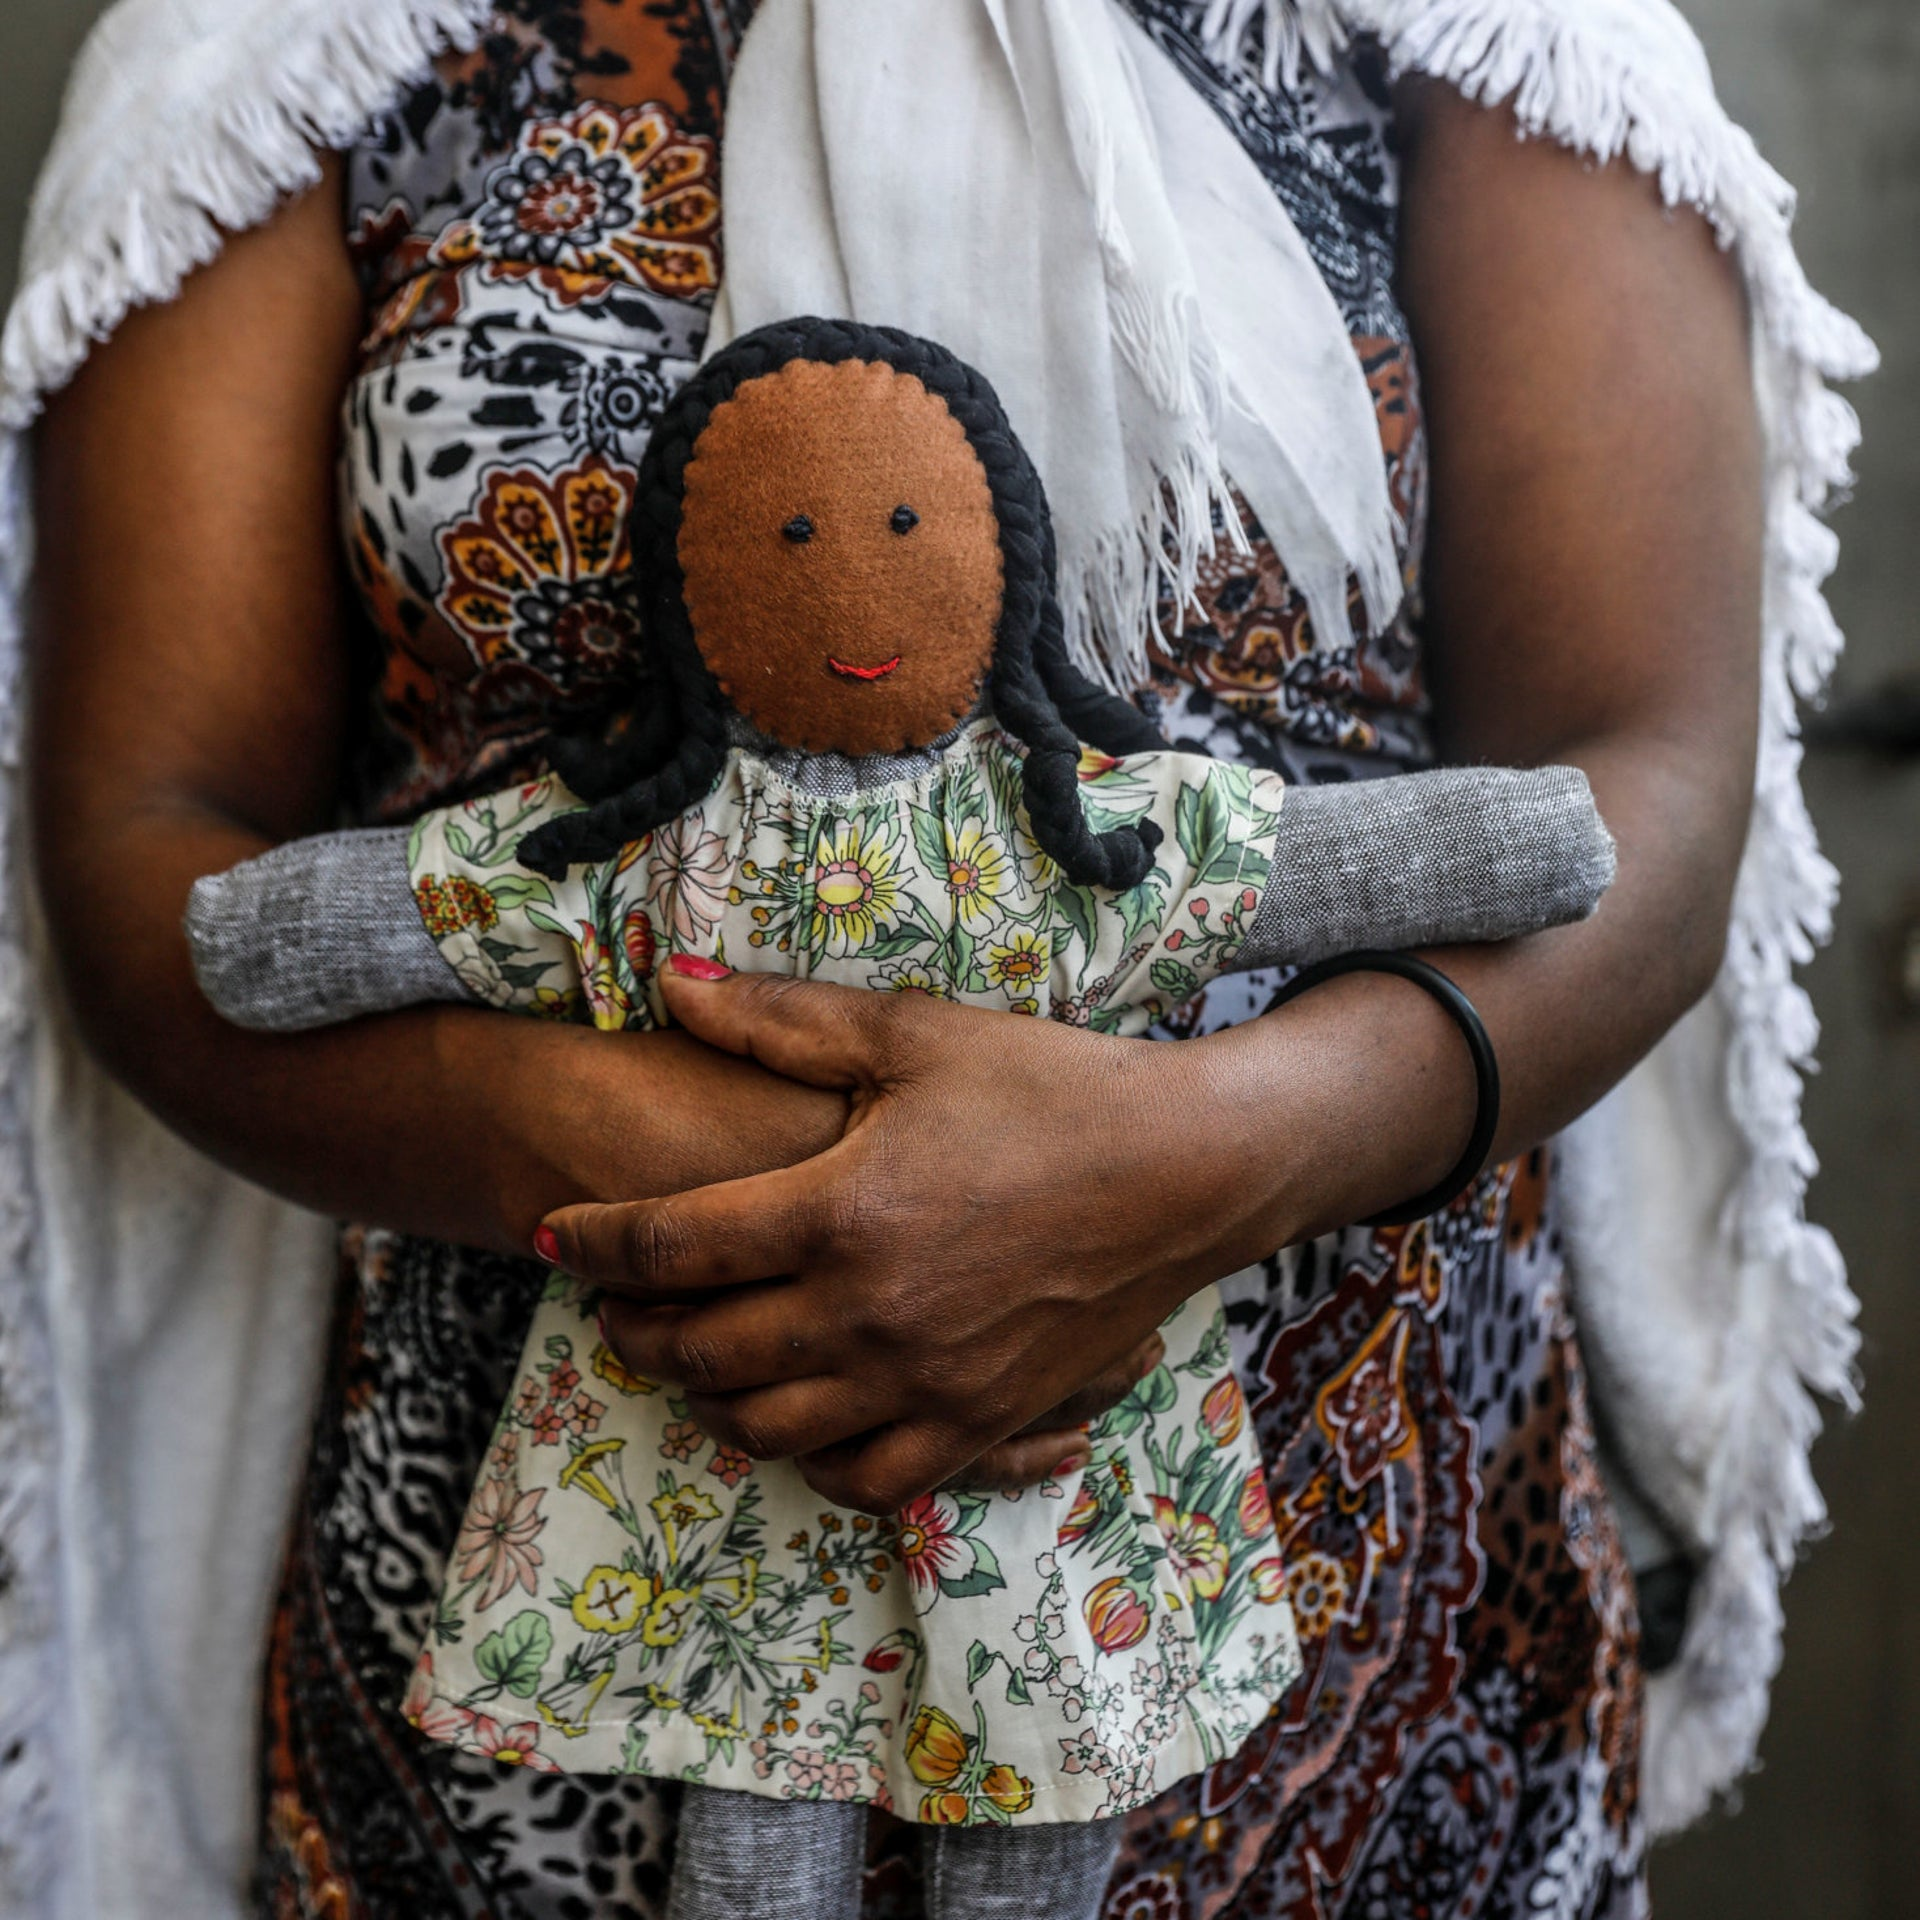 An asylum seeker presents one of the dolls she made.